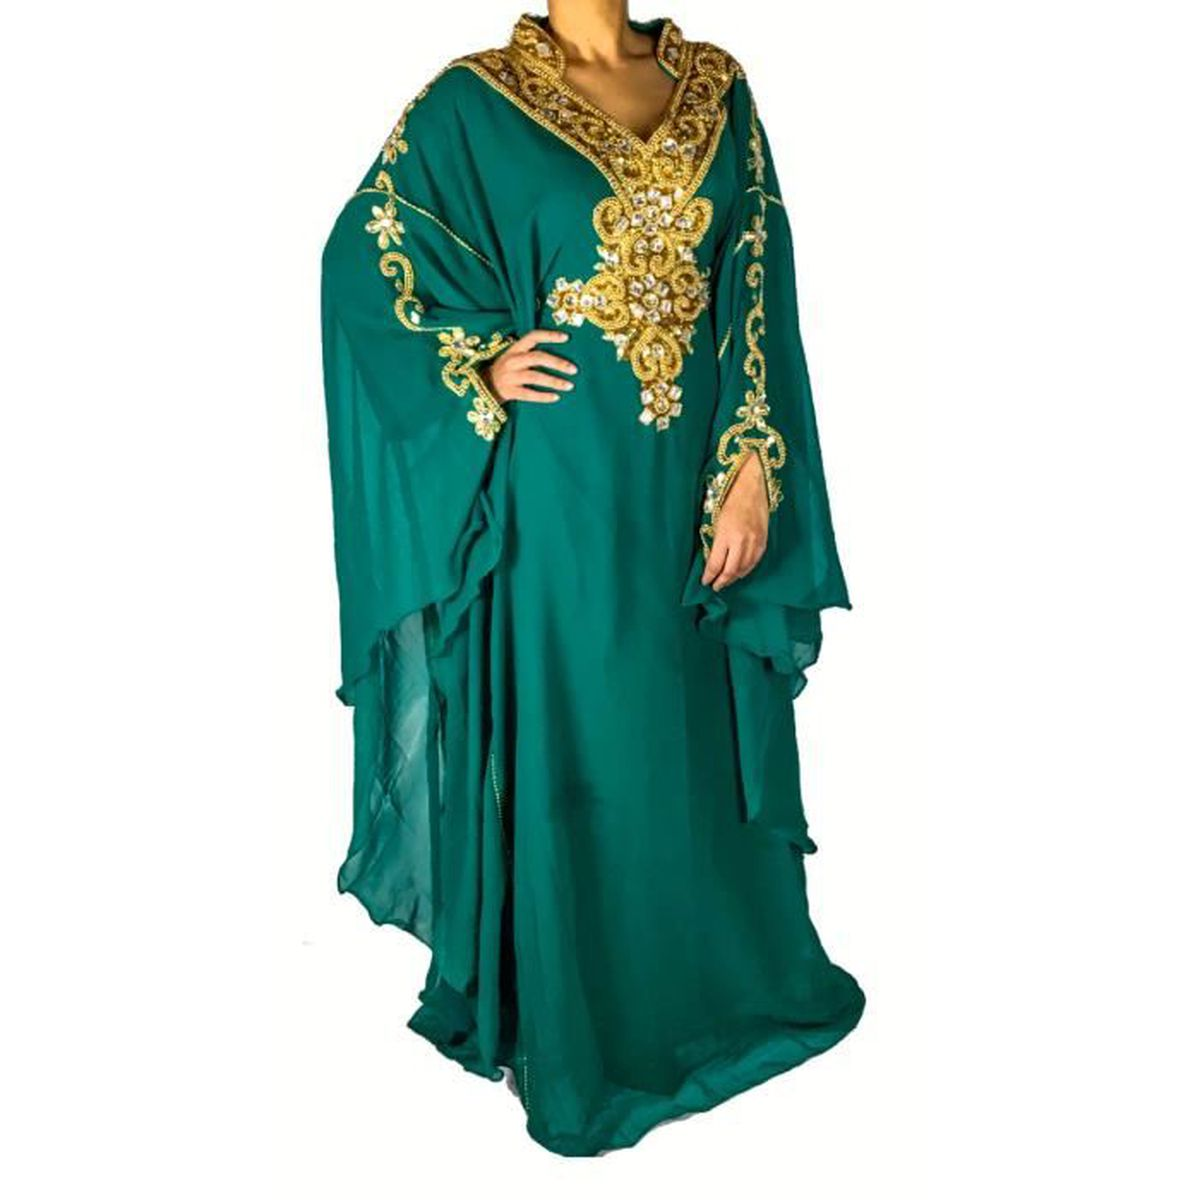 robe dubai caftan pas cher vert dor tenue orientale. Black Bedroom Furniture Sets. Home Design Ideas